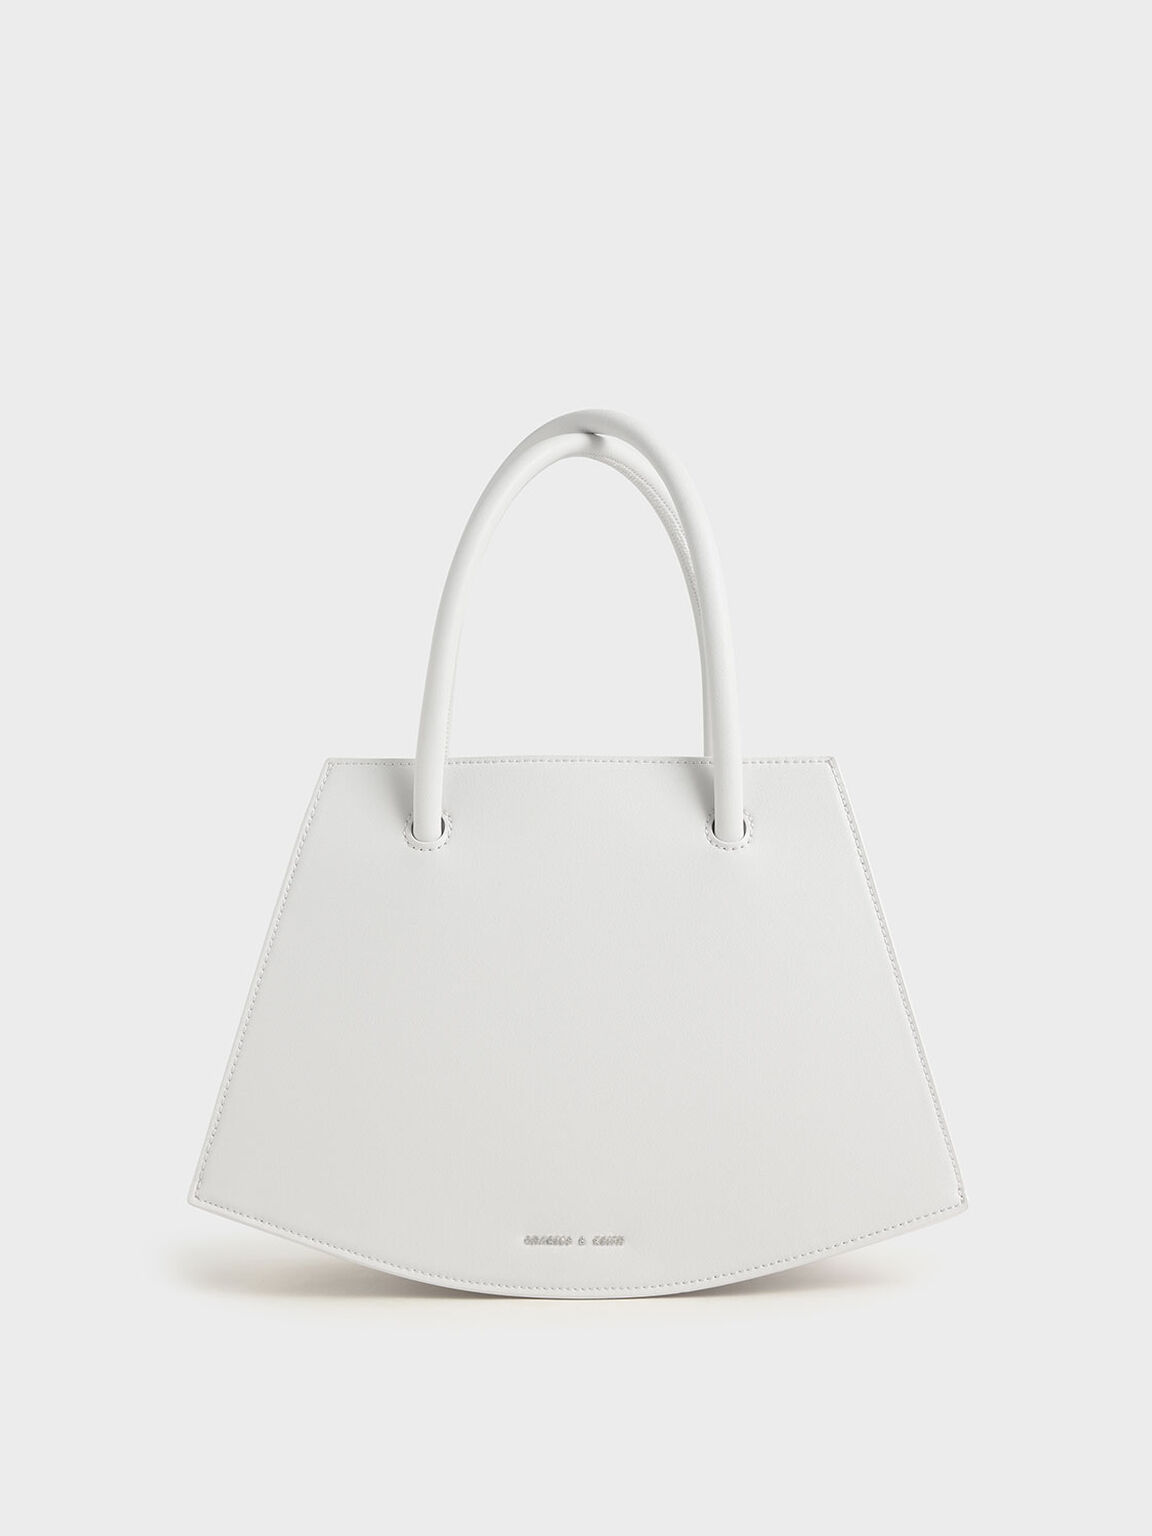 White Curved Tote Bag Charles Keith Usd